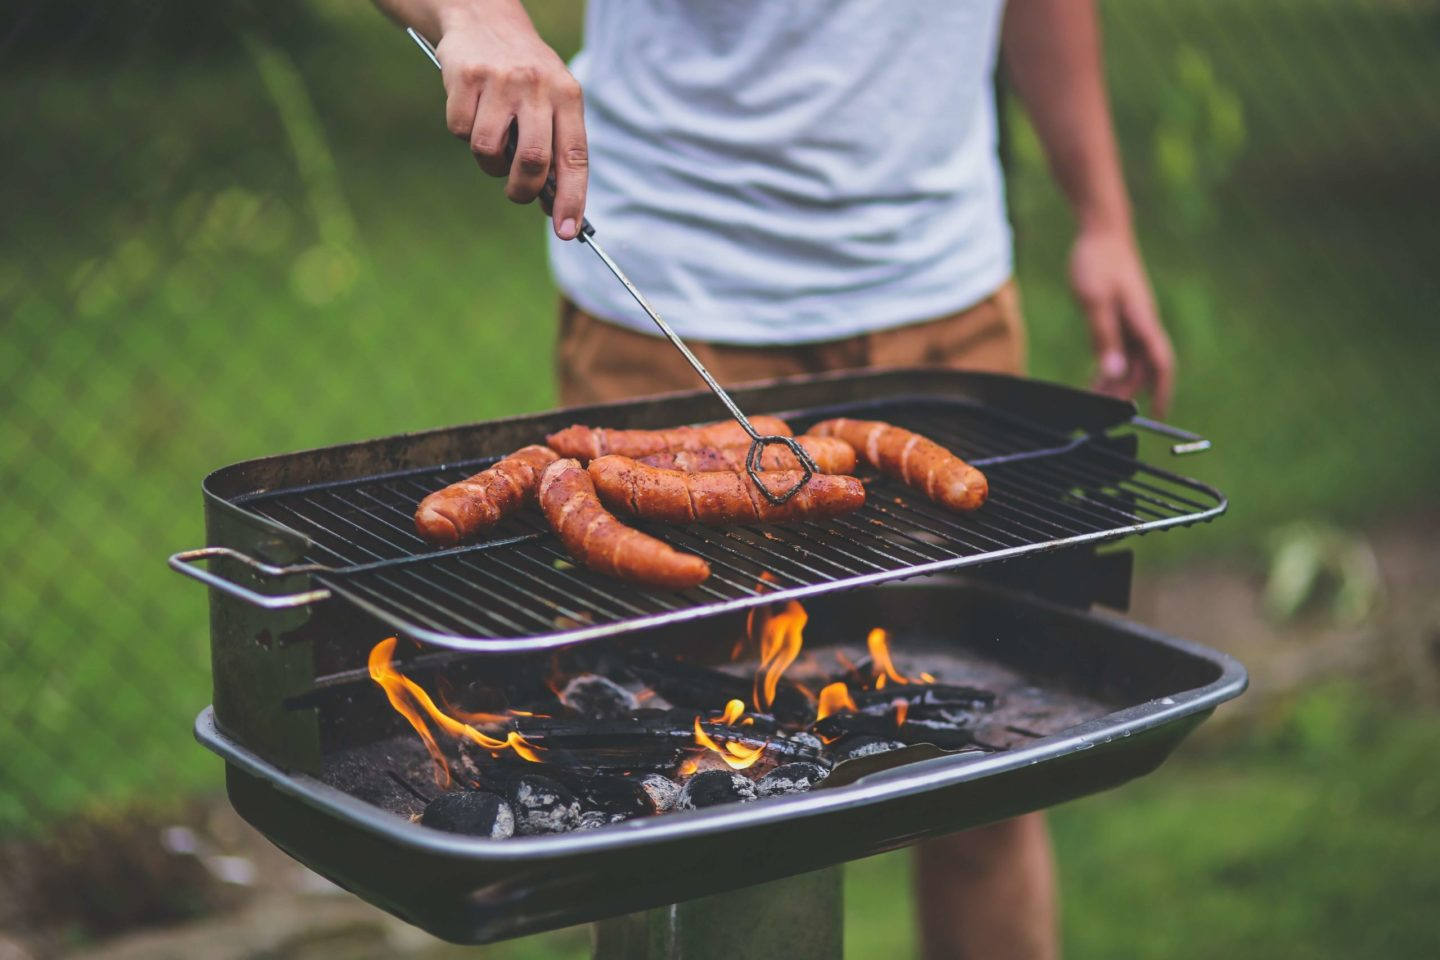 man grilling meat